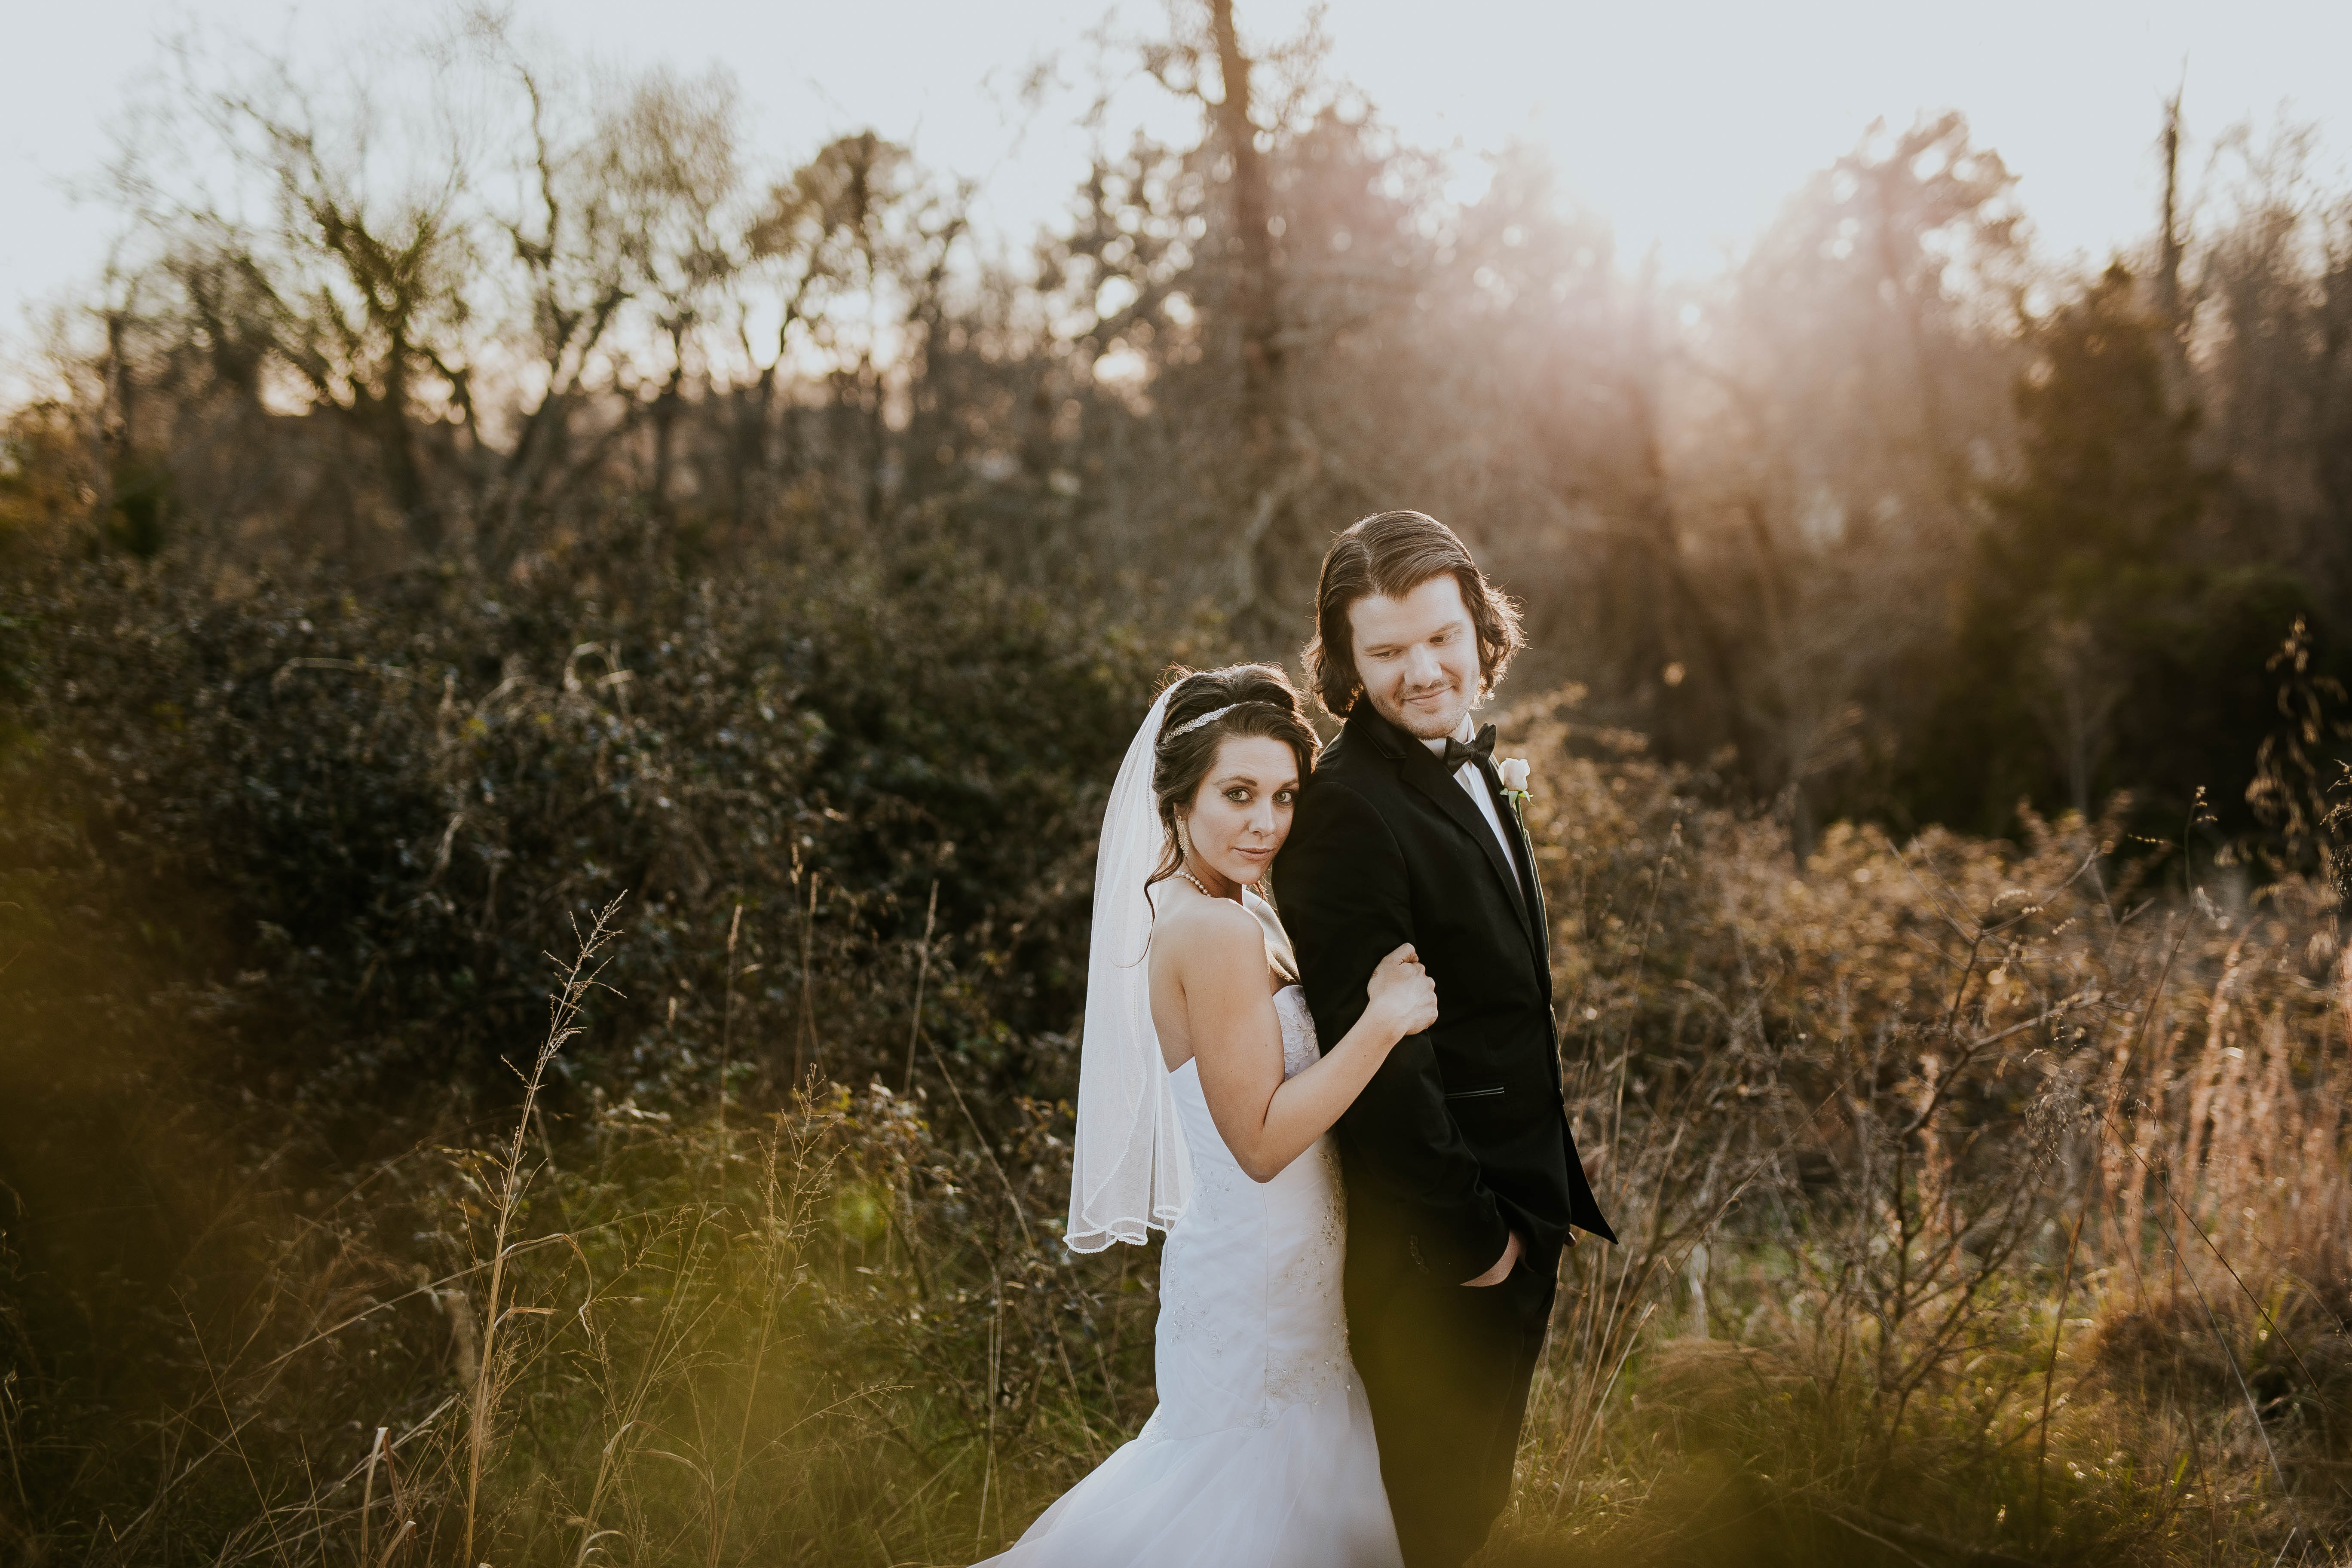 bride and groom near green leafed plants during daytime